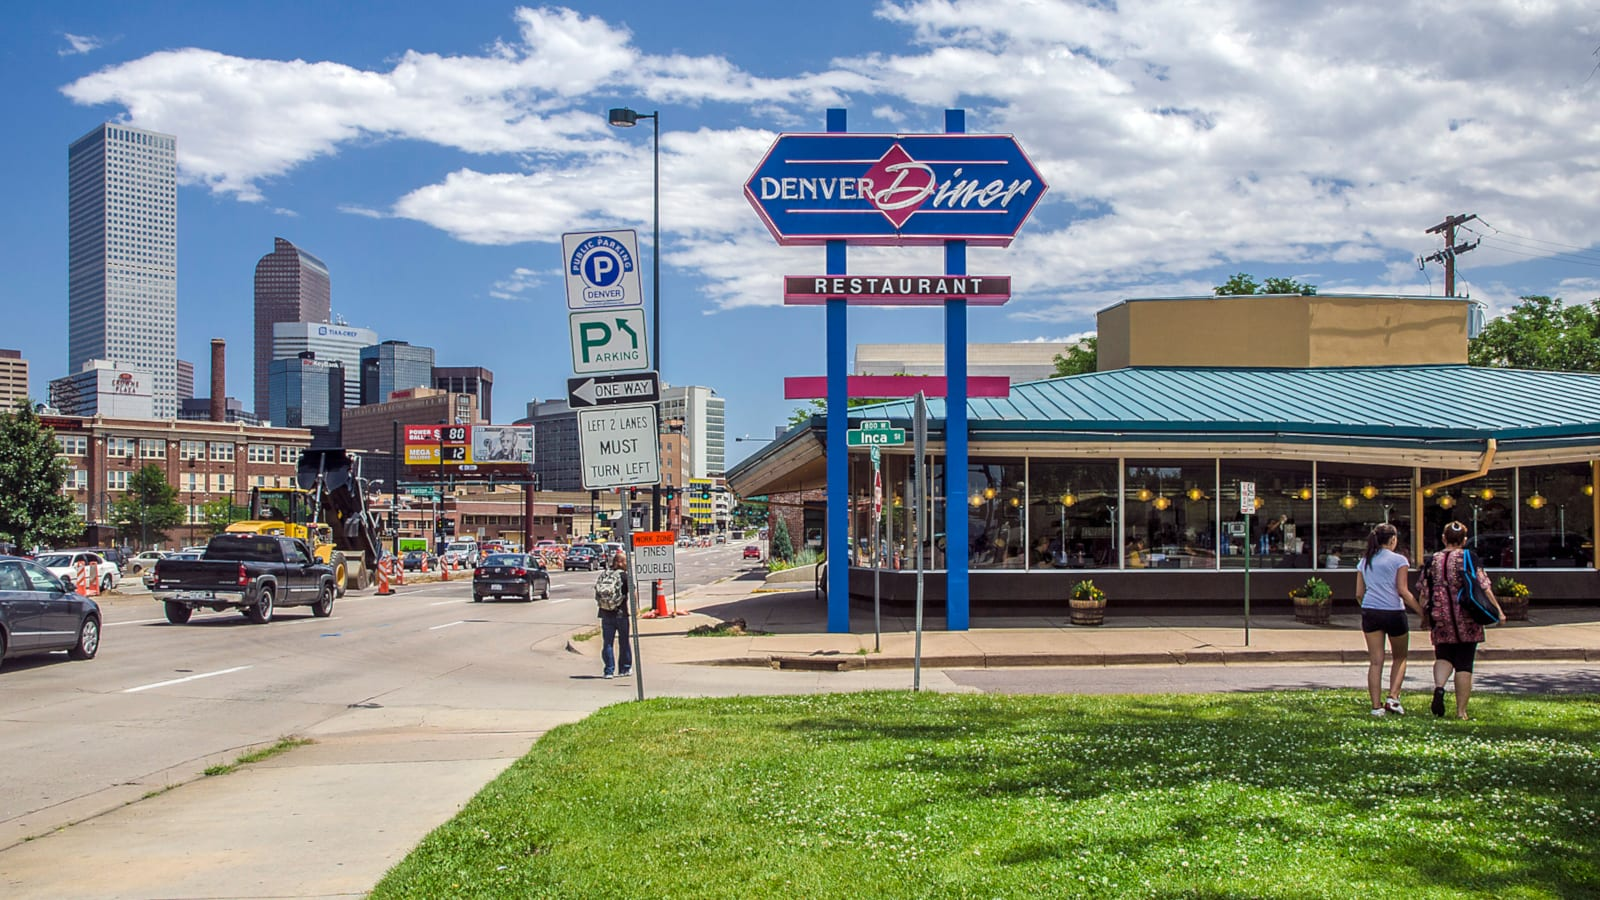 Travel Destination Denver Diner Restaurant Food